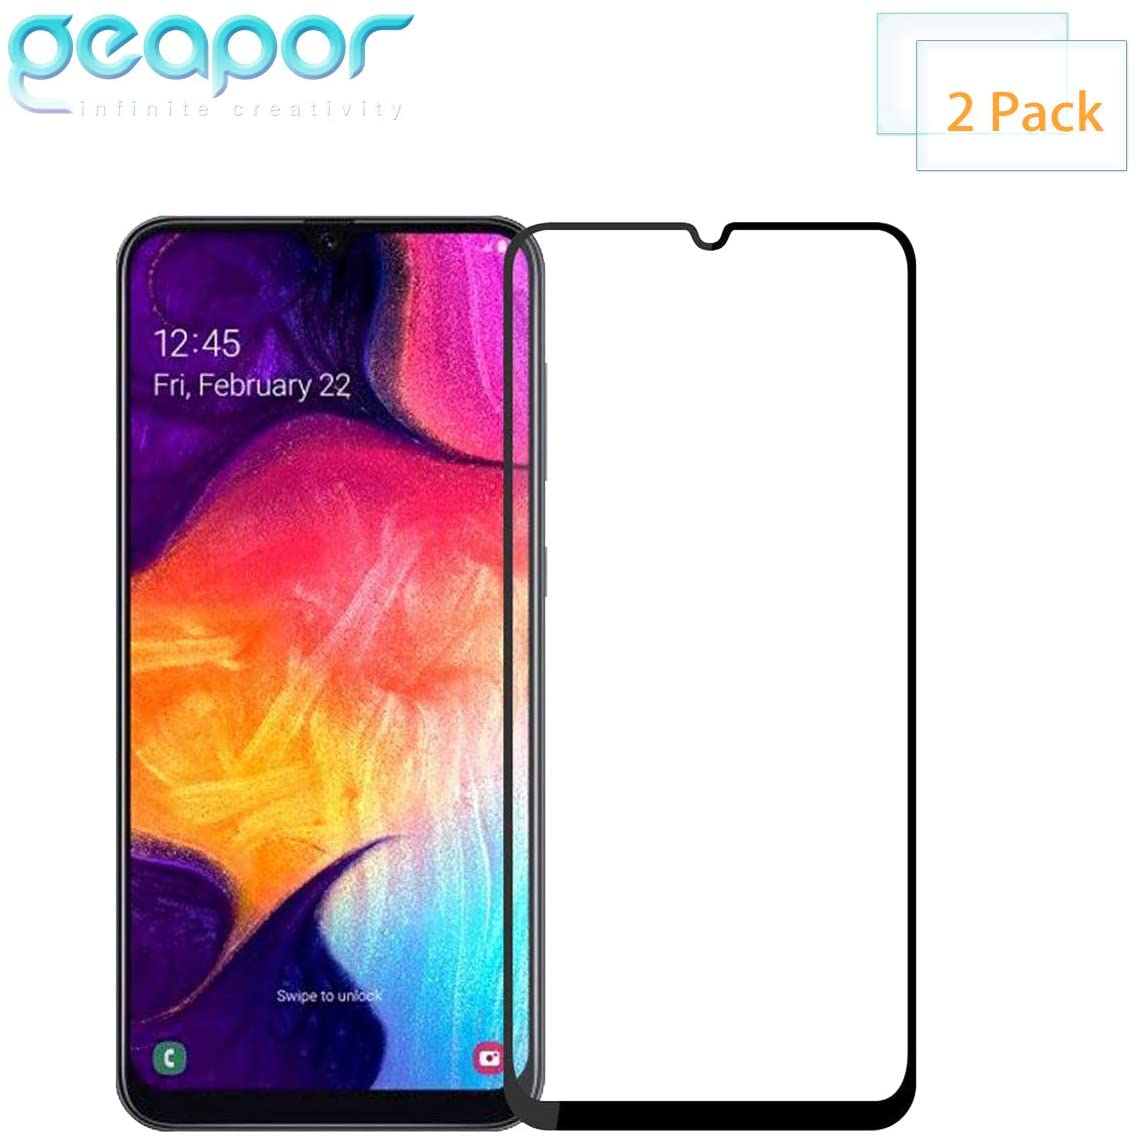 [2 Pack] Screen Protector for Samsung Galaxy A70 2019, Full Screen Coverage Geapor Tempered Glass Screen Protector for Samsung A70 9H HD-Clear Ant-Scratch Glass Protector -Black